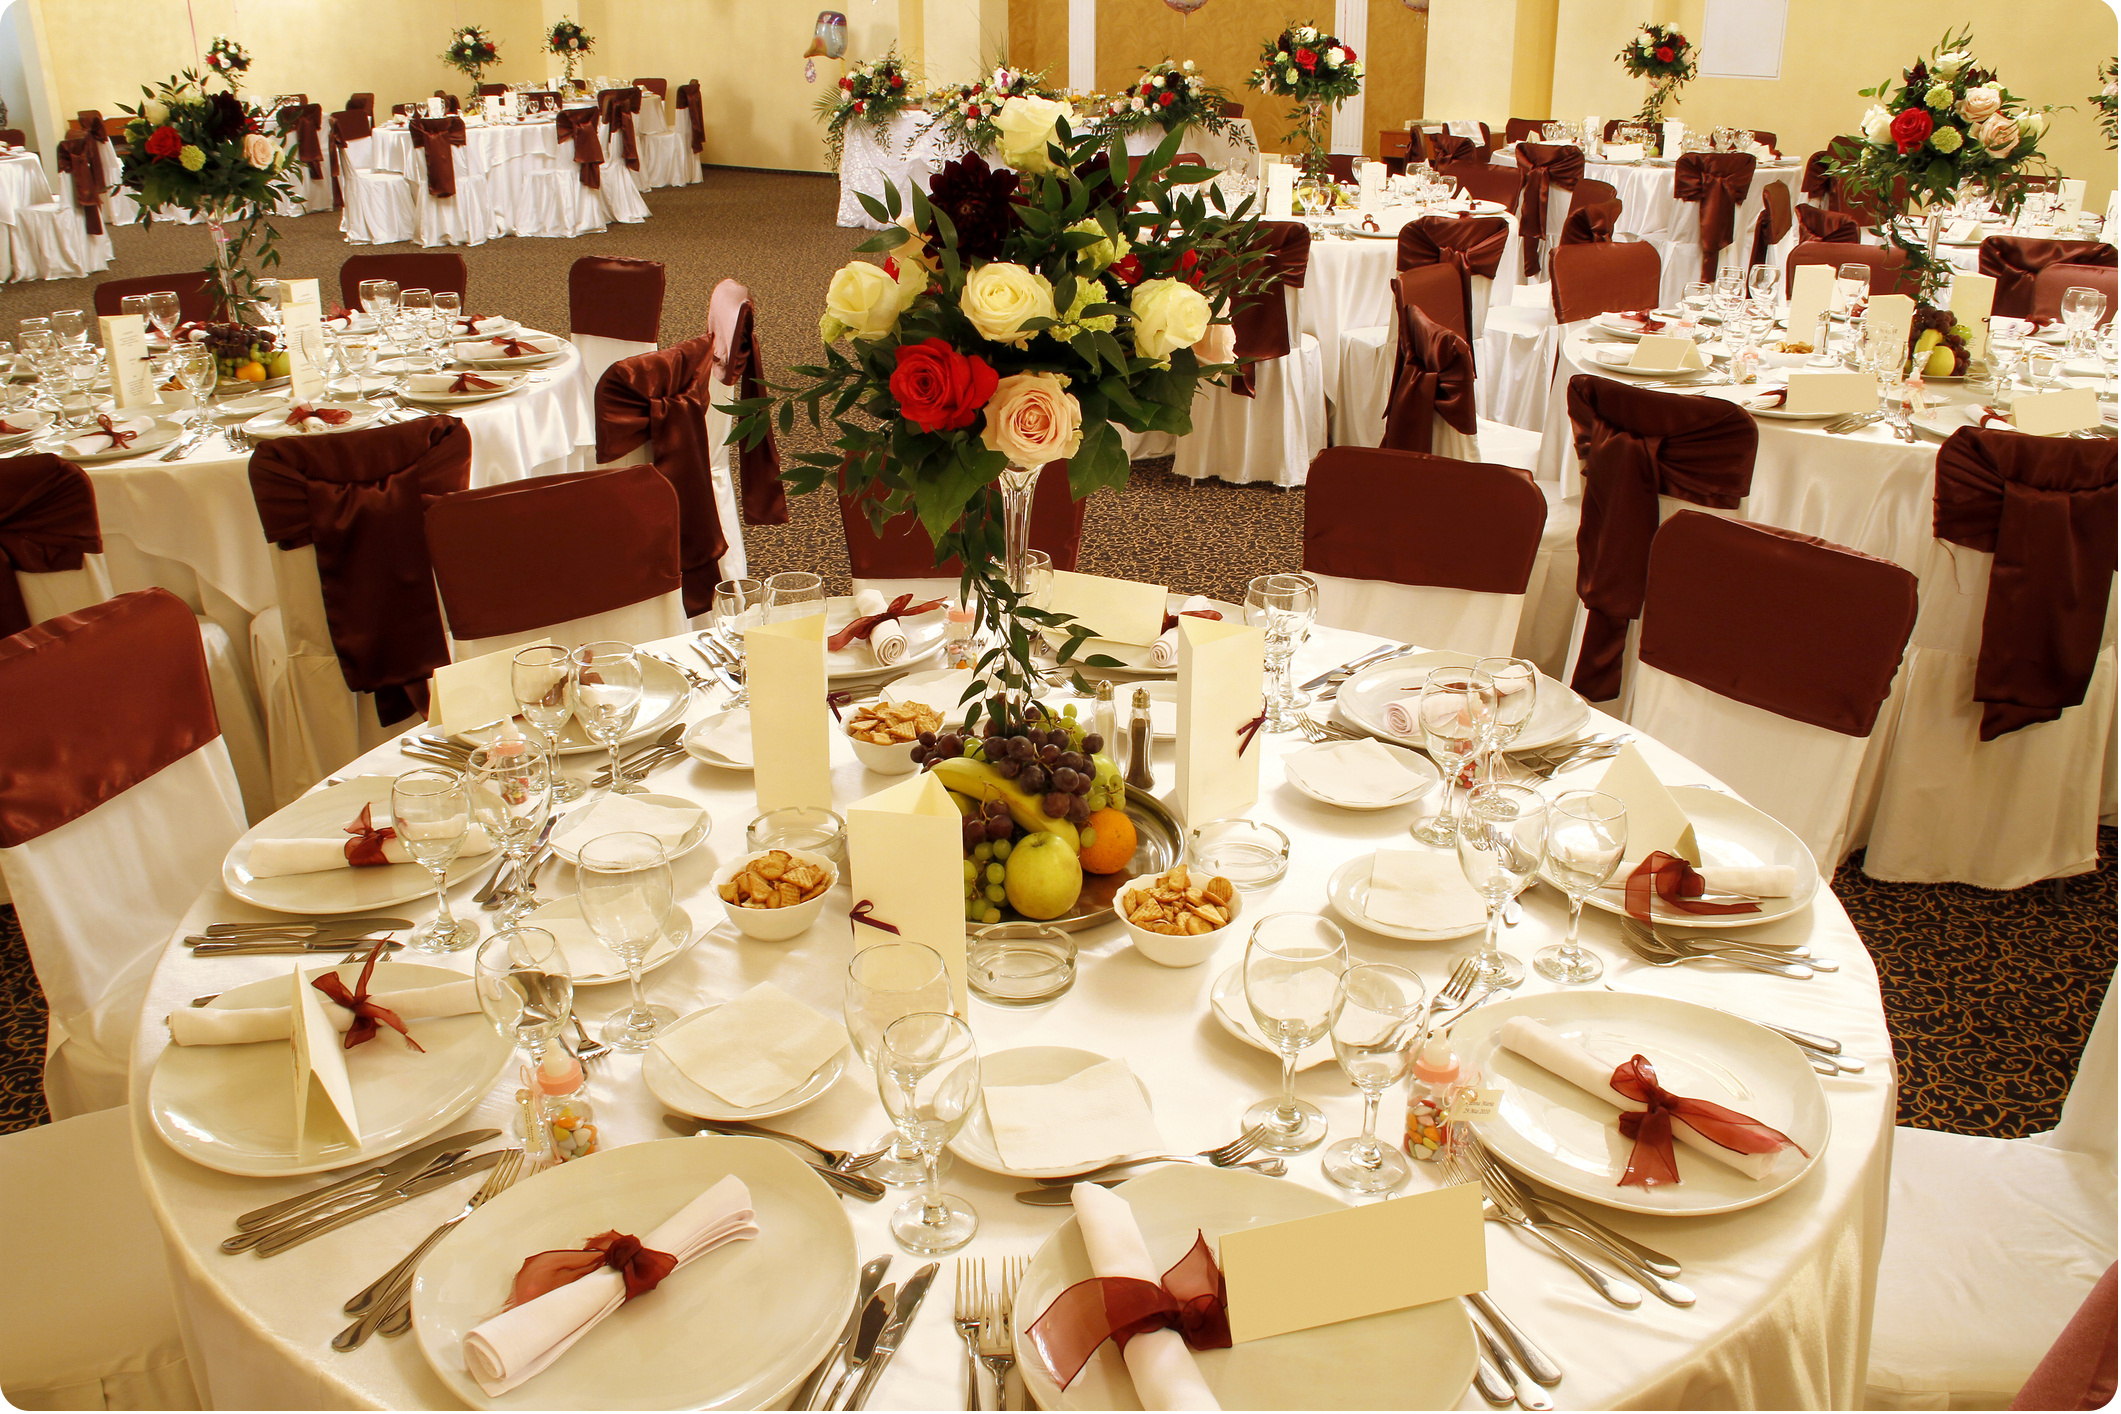 Wedding Banquet Decorations Of Wedding Party Decoration Ideas Wedding Table Decoration